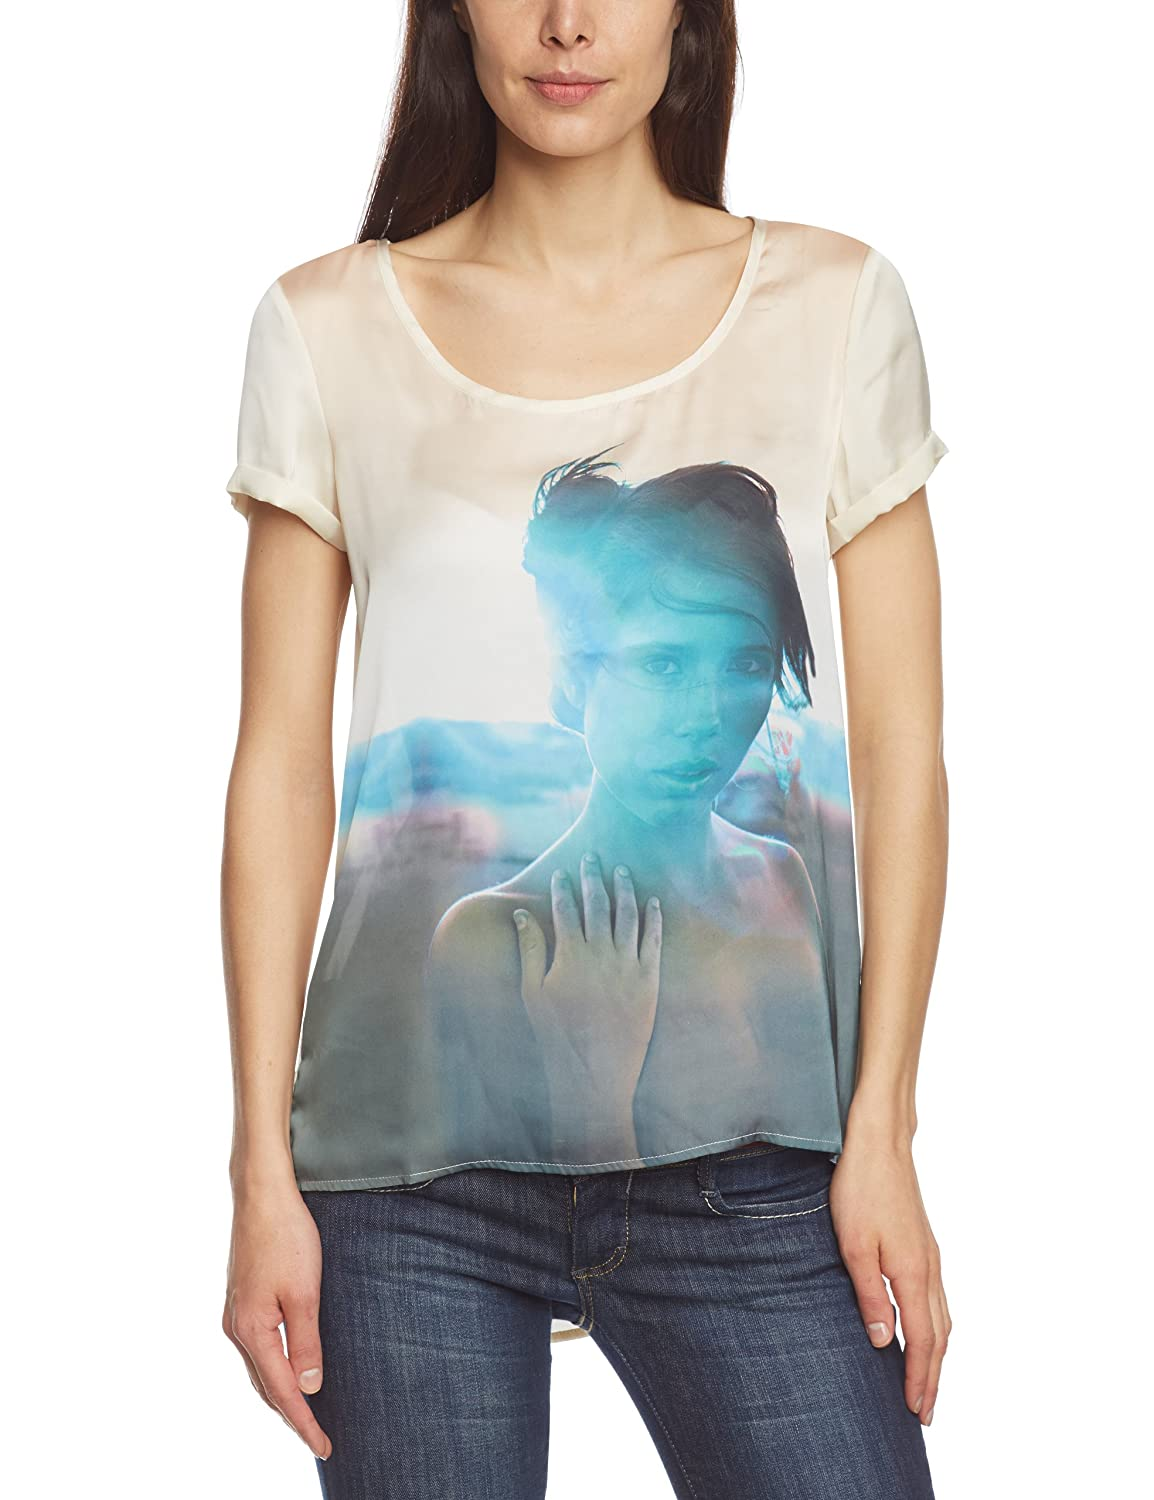 Only - T-Shirt ONLY Grunge blue - 34